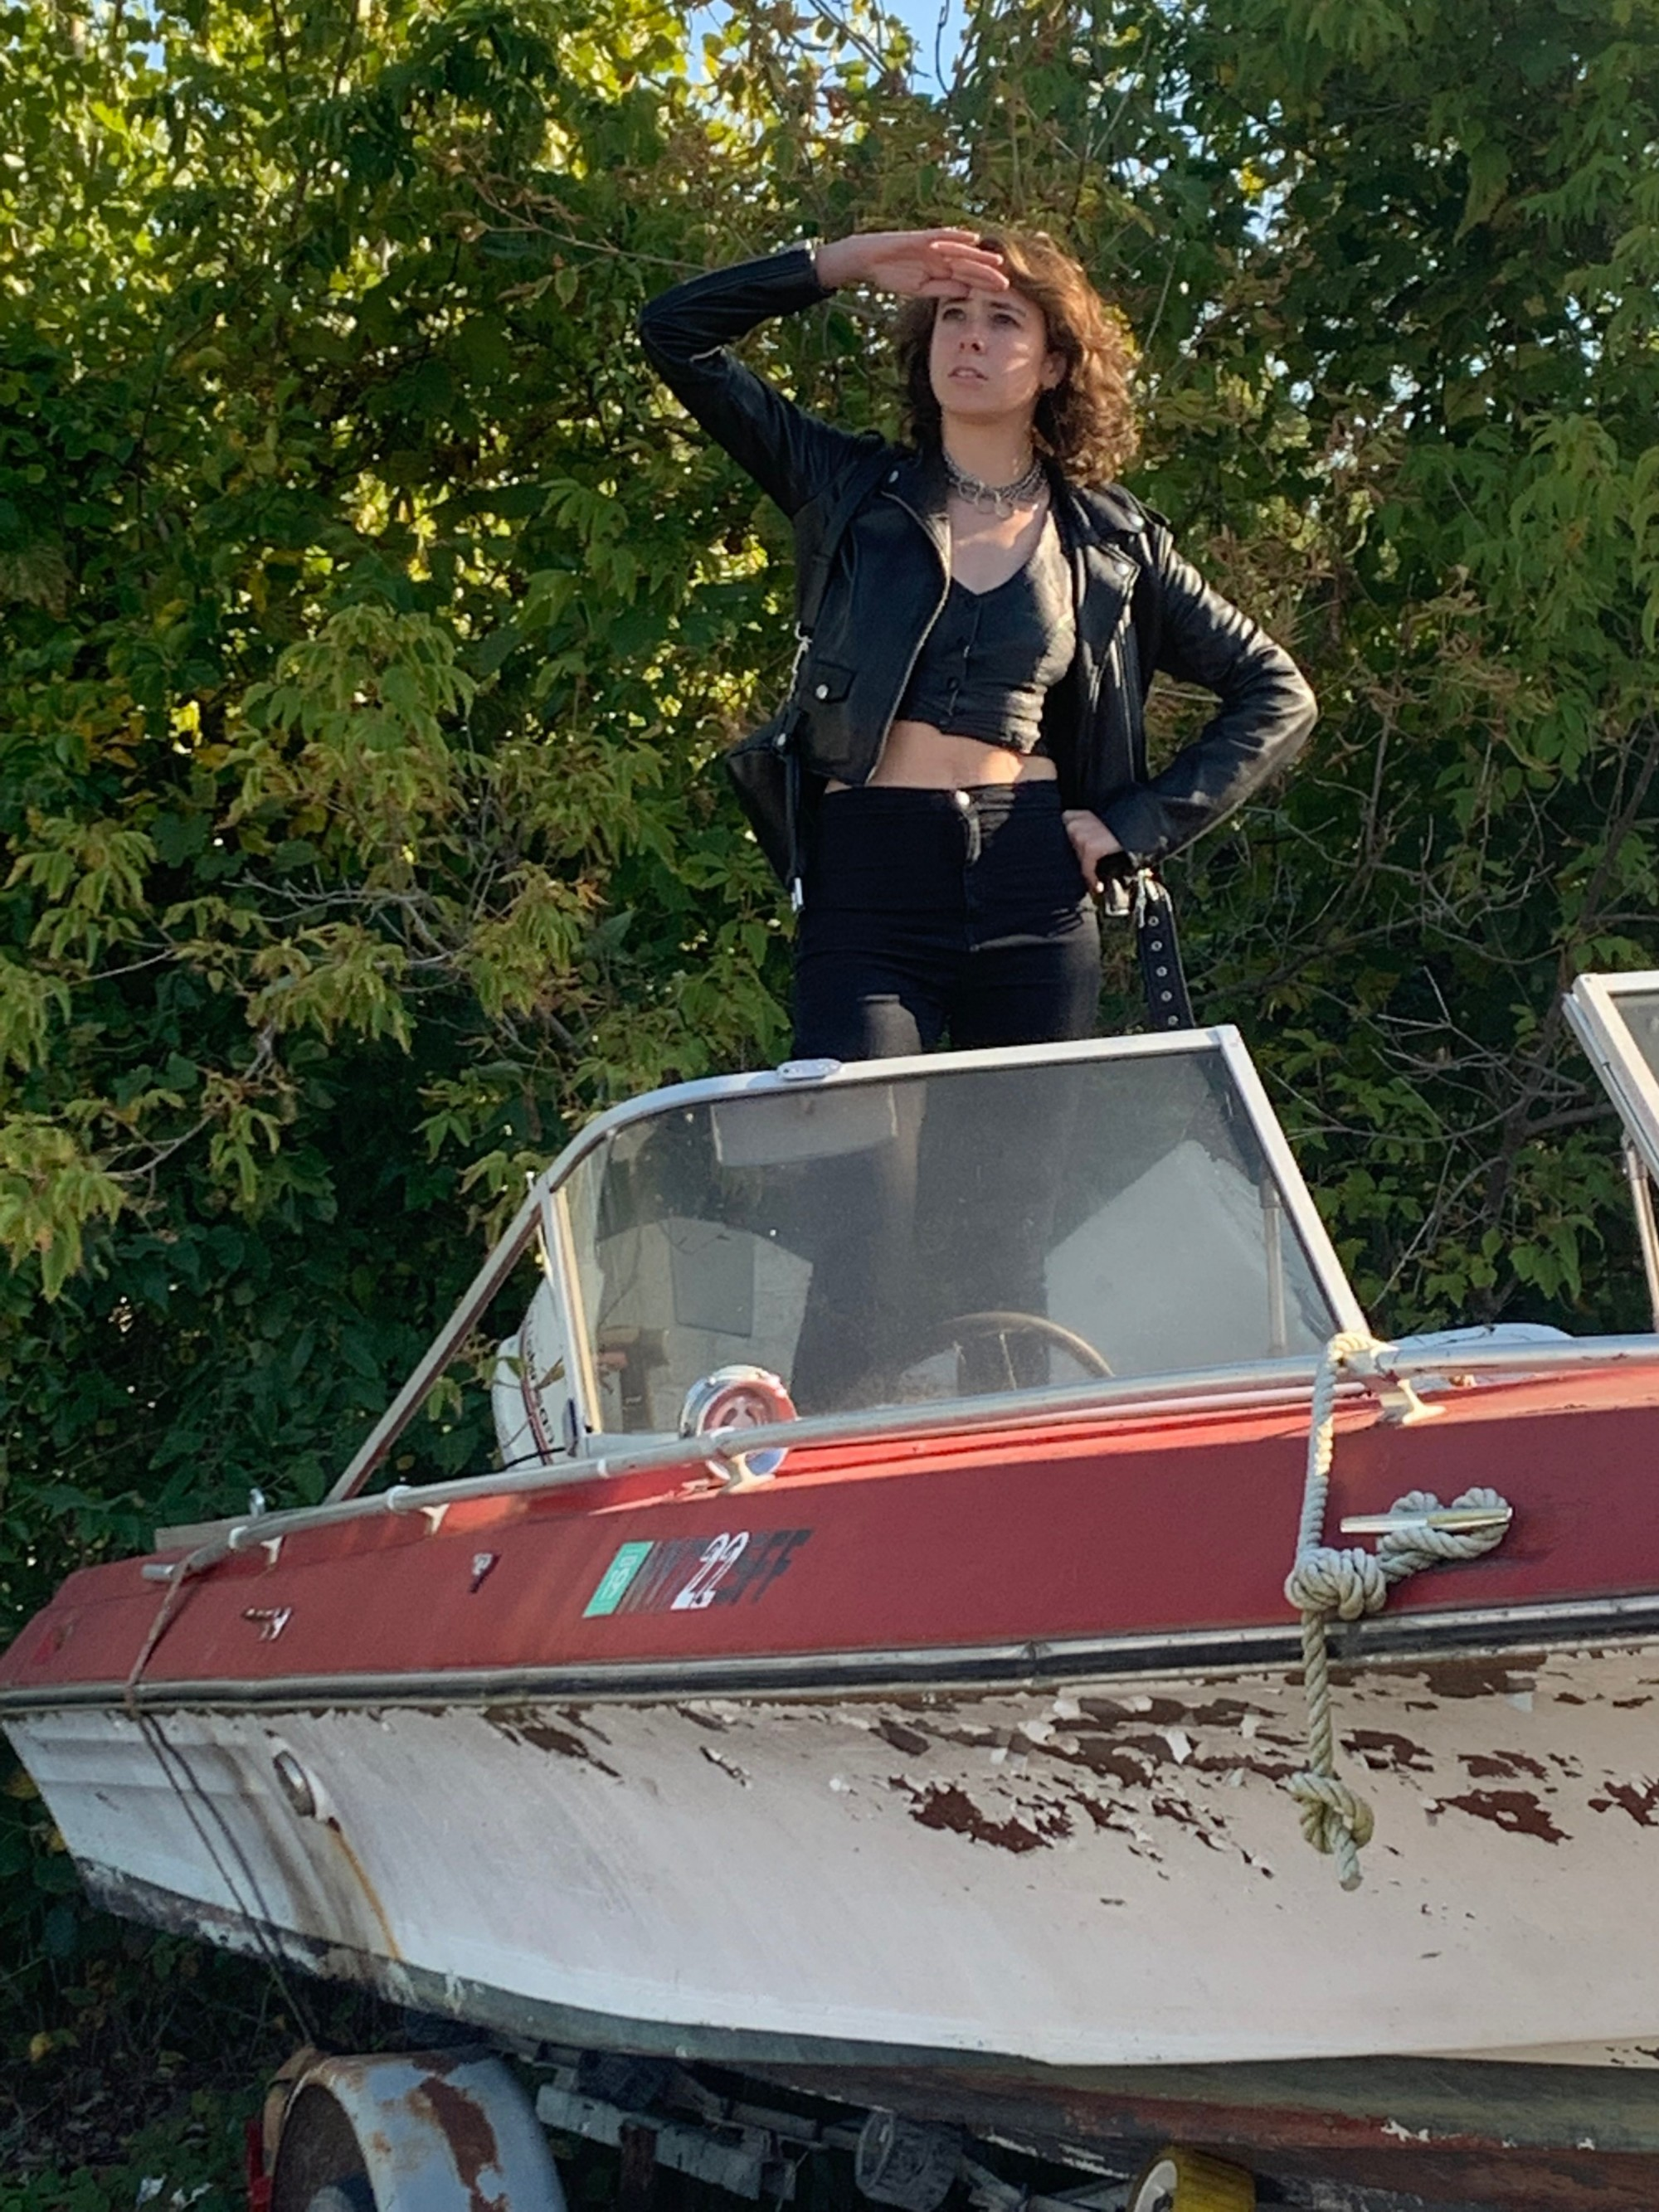 Rebecca Teich is dressed in all black, standing on a dilapidated boat parked on land, with green trees in the background, their hand raised to their eyebrows as if navigating.